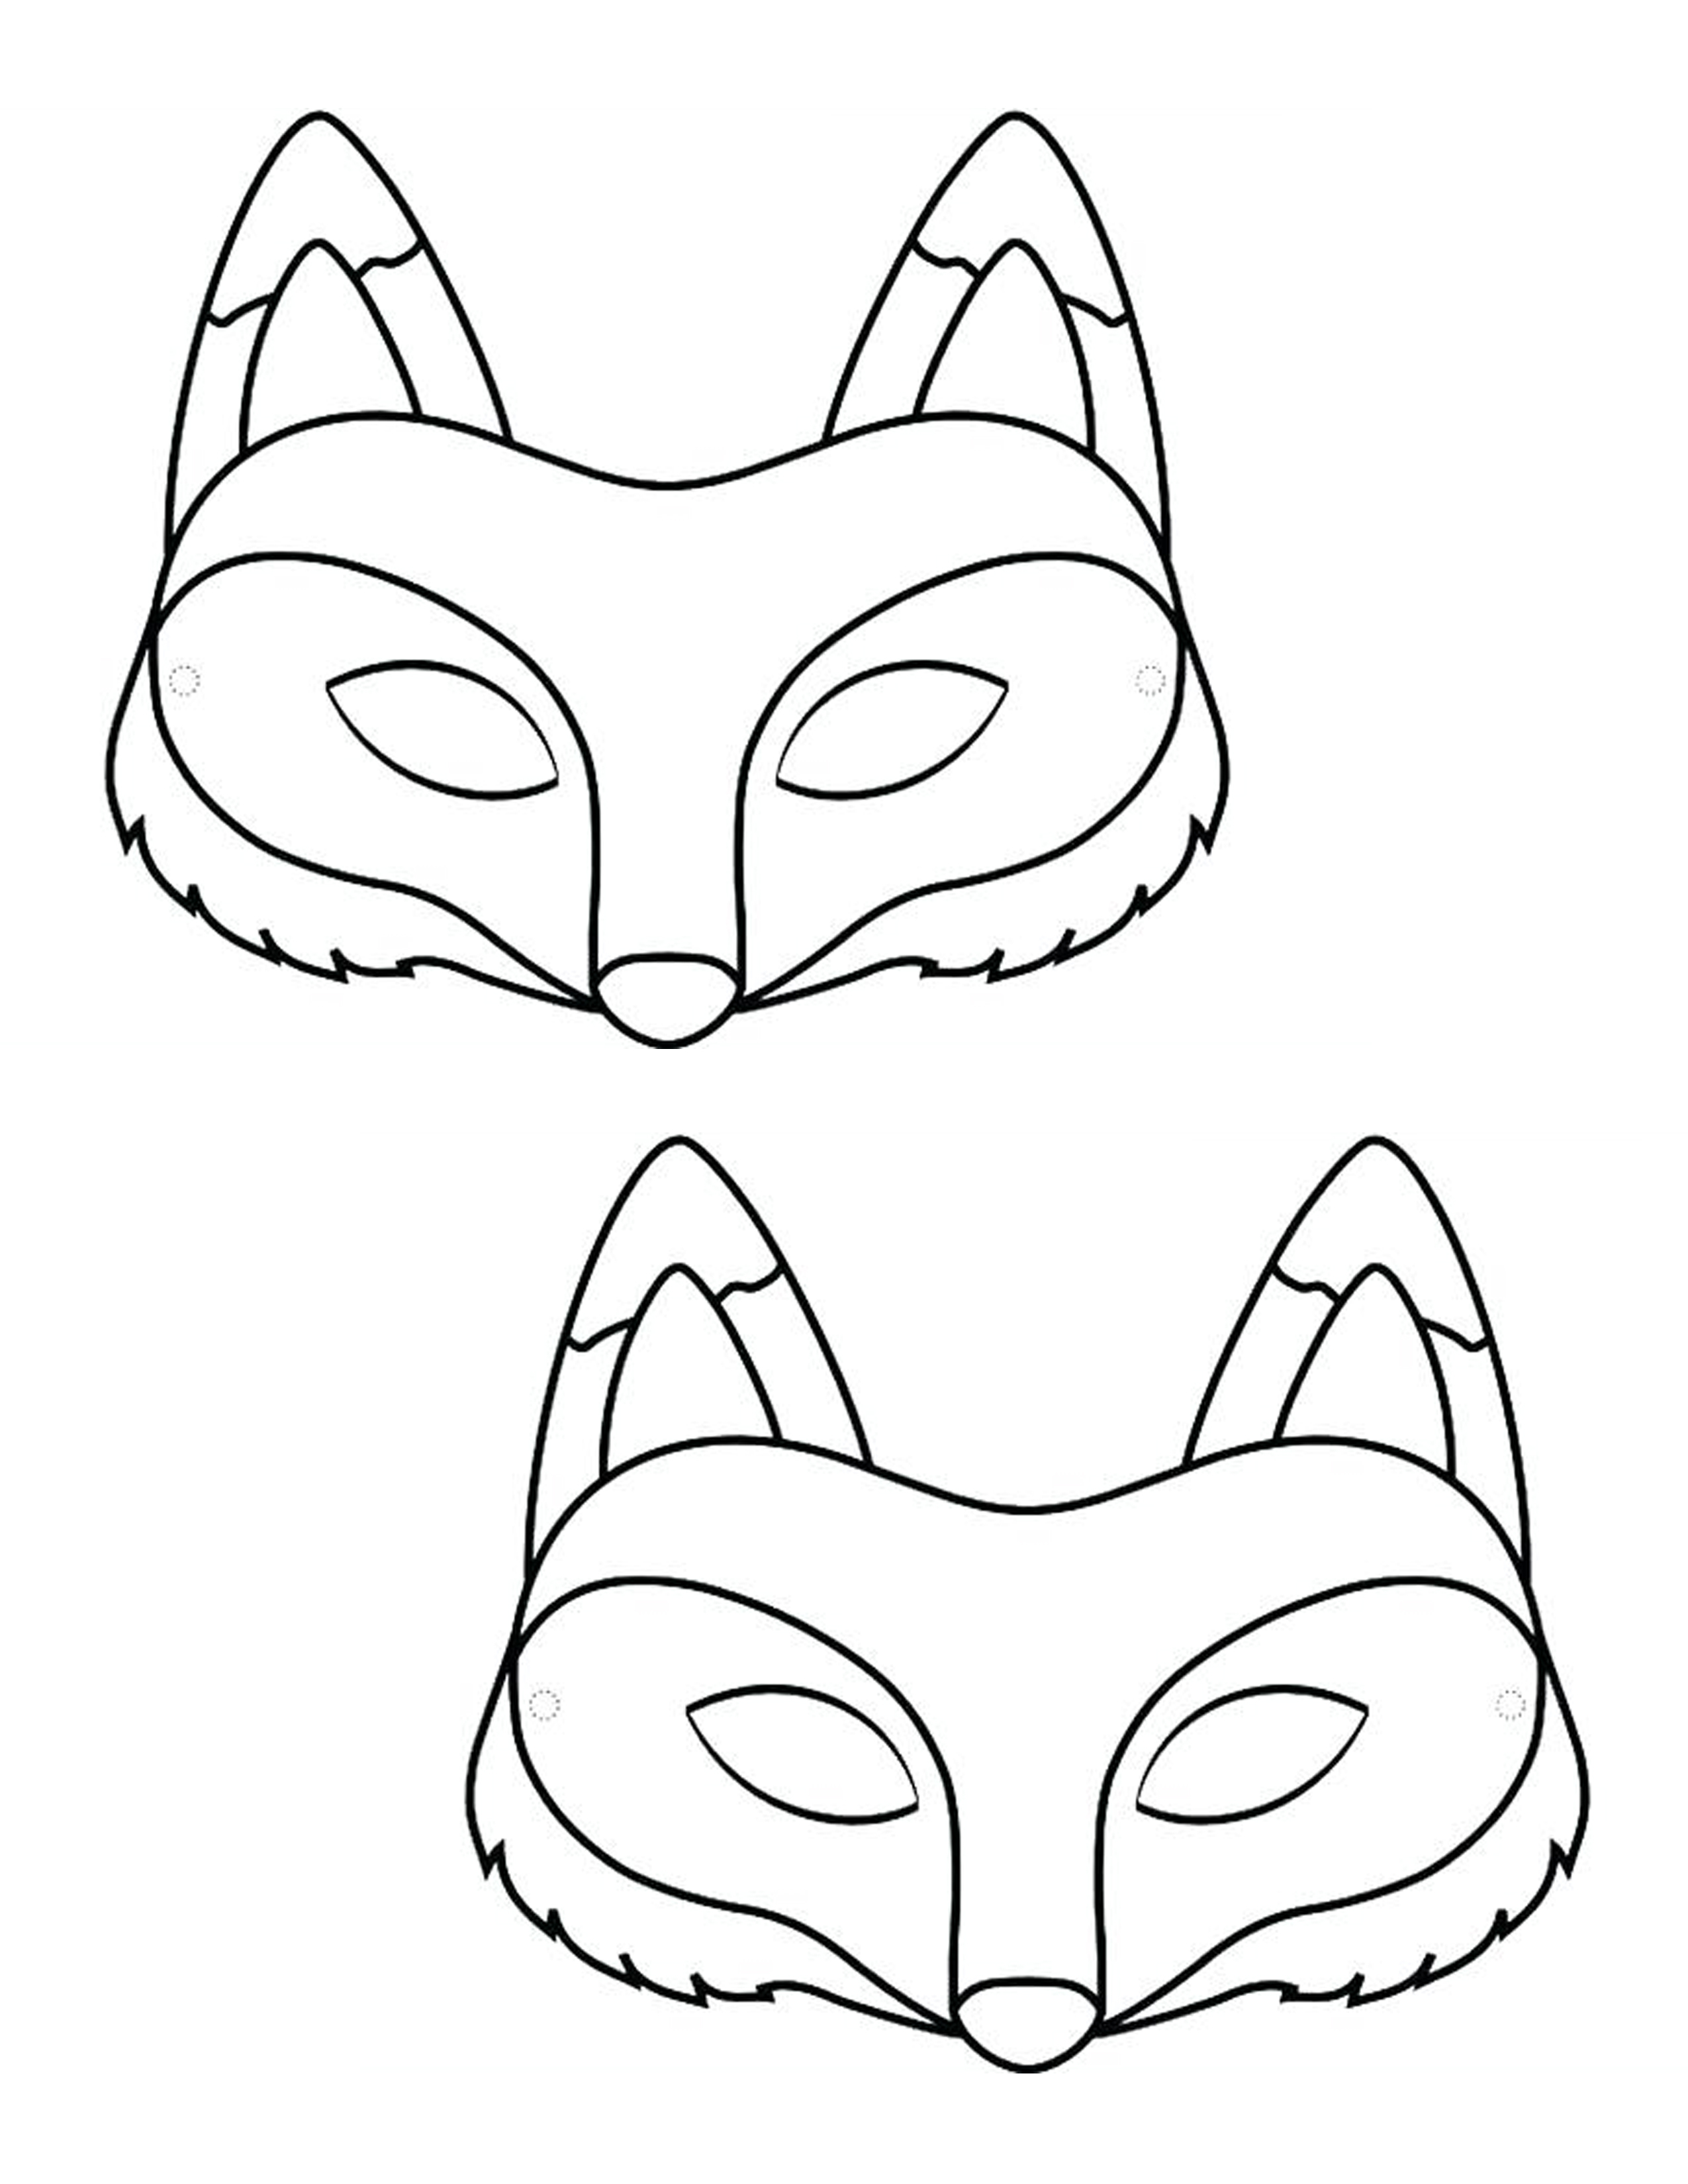 image about Printable Fox Masks named What Does the Fox Say? Snacks, Crafts and Model - Develop